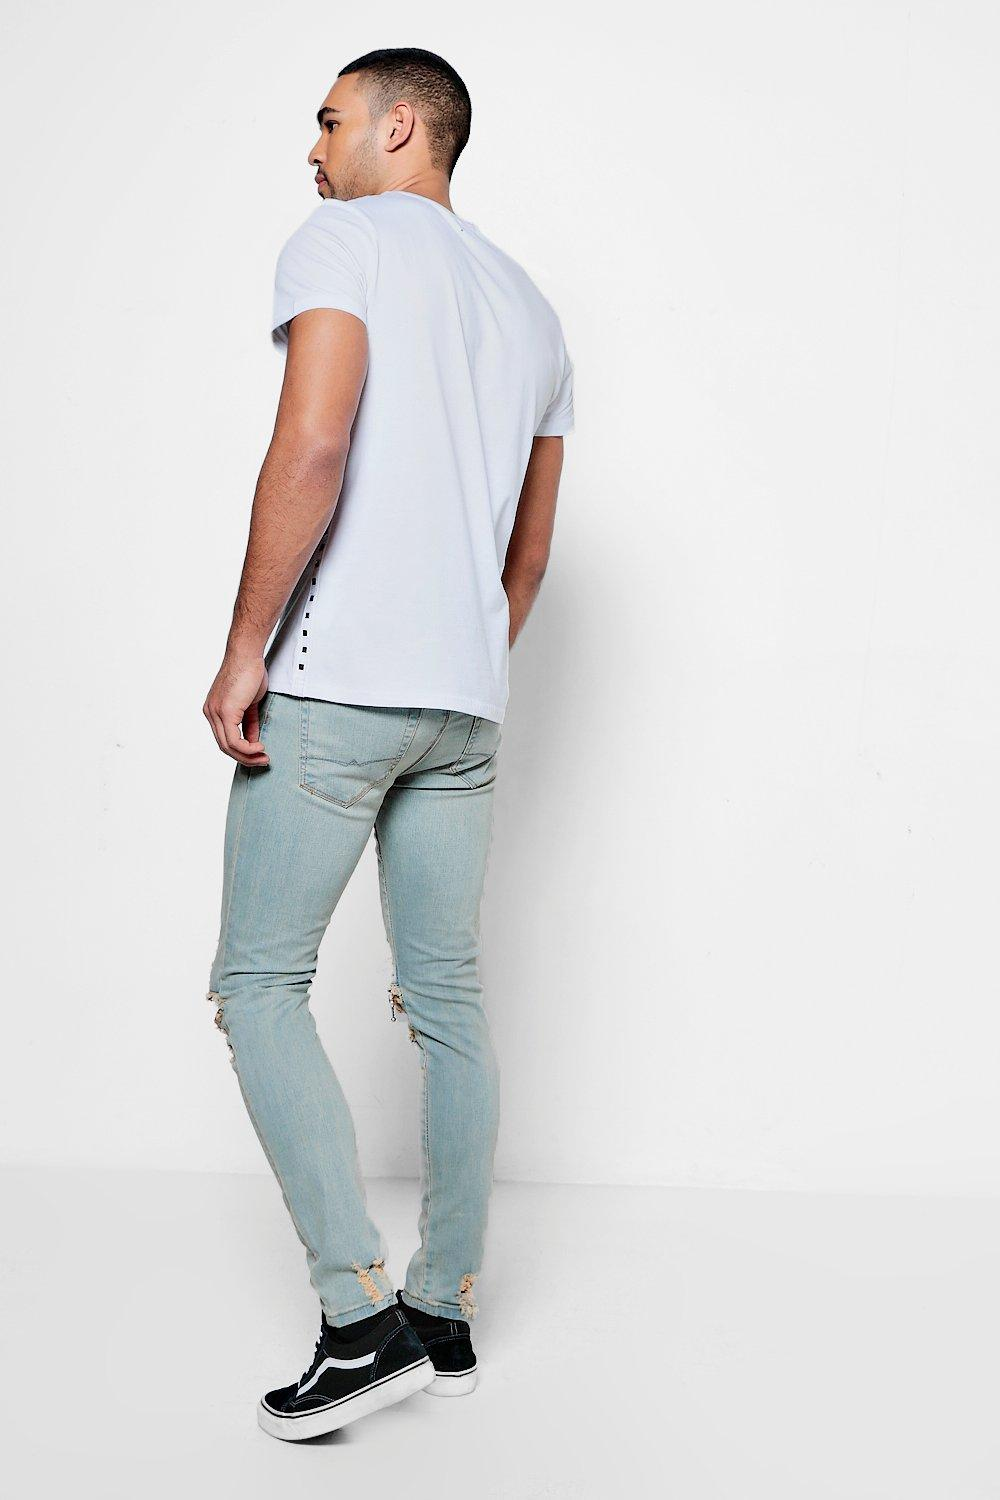 SLIT DENIM BURNT JEAN - The Executive Line